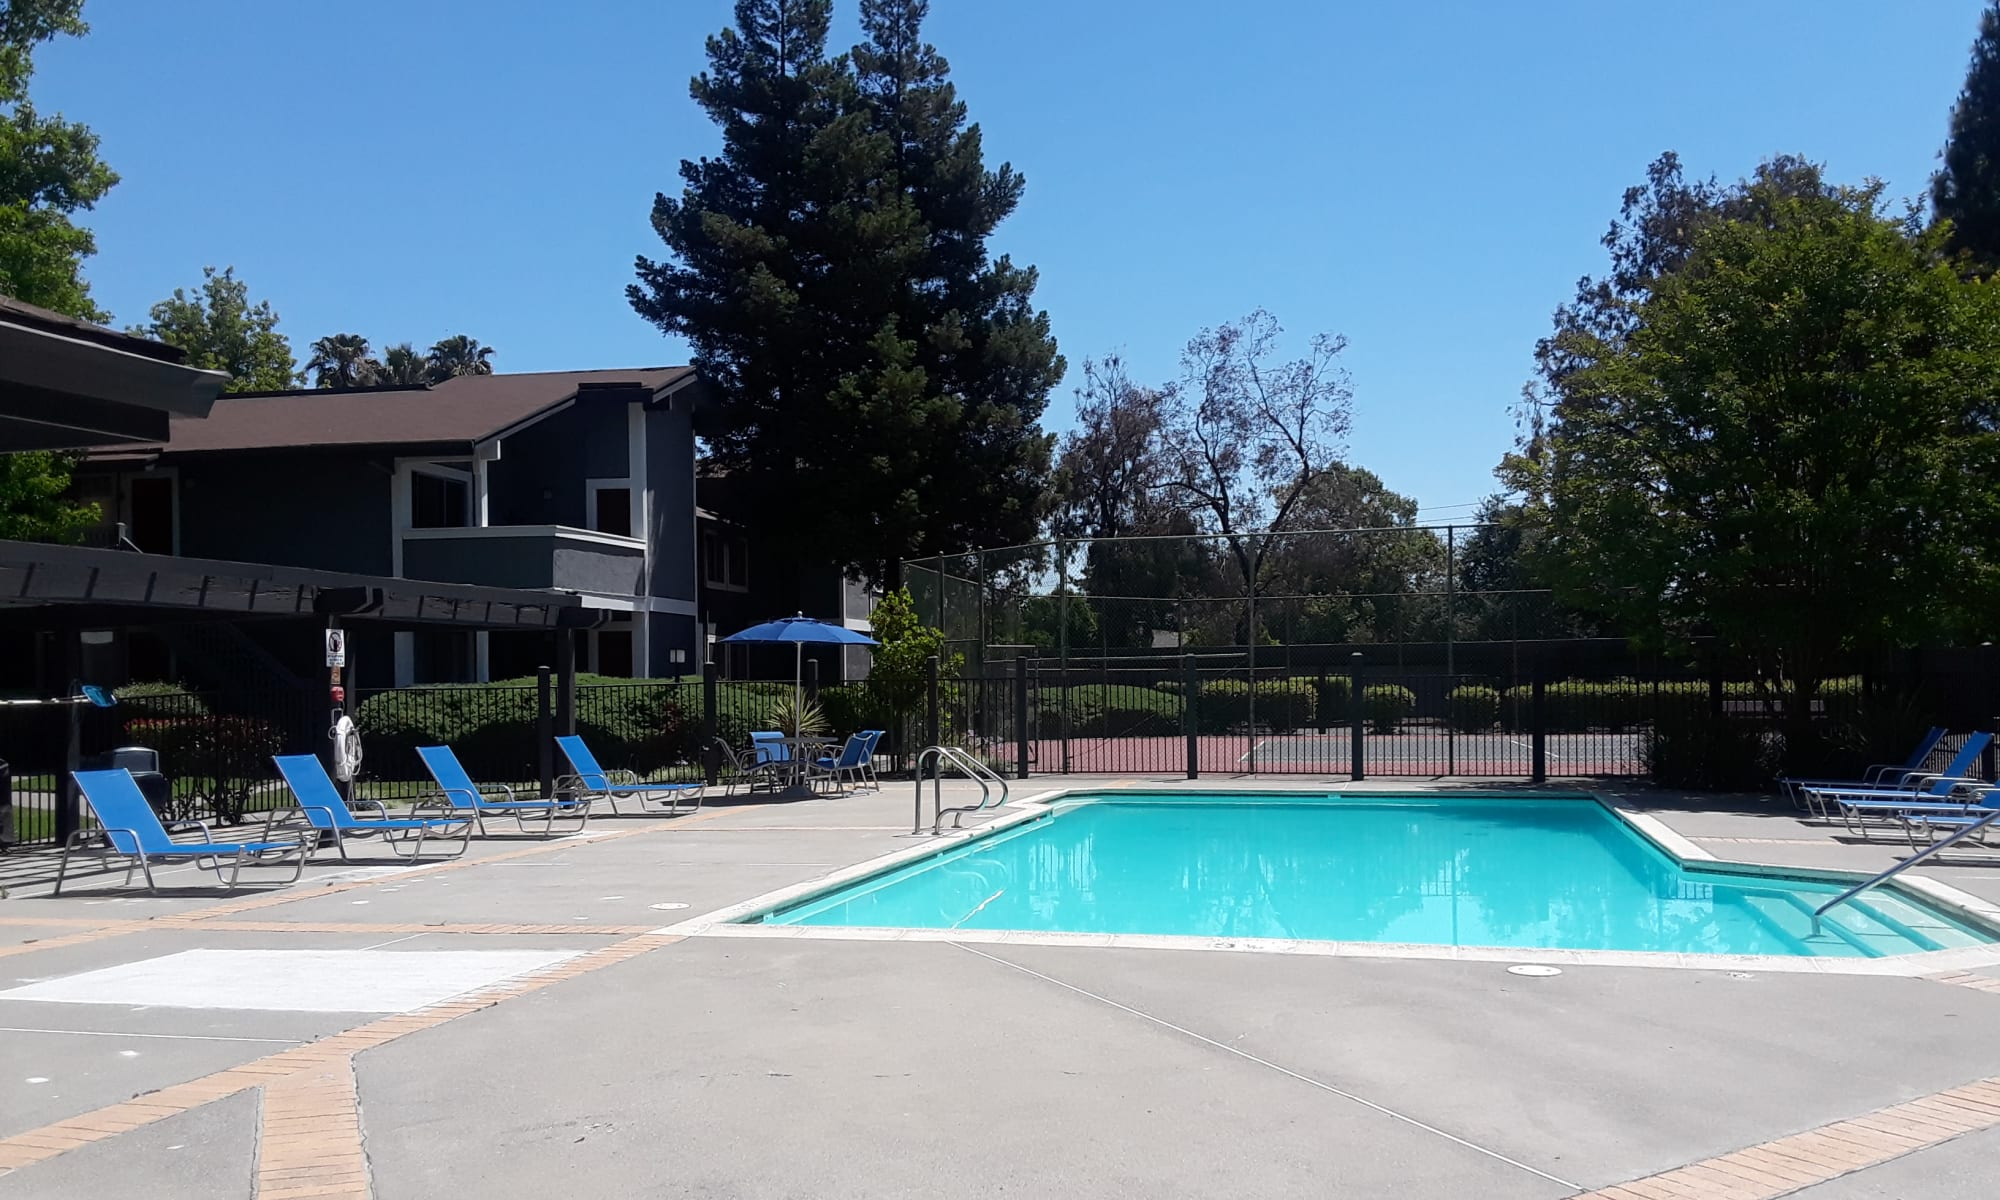 Exterior Pool shot with lounges, tennis court in background in Fairfield, CA